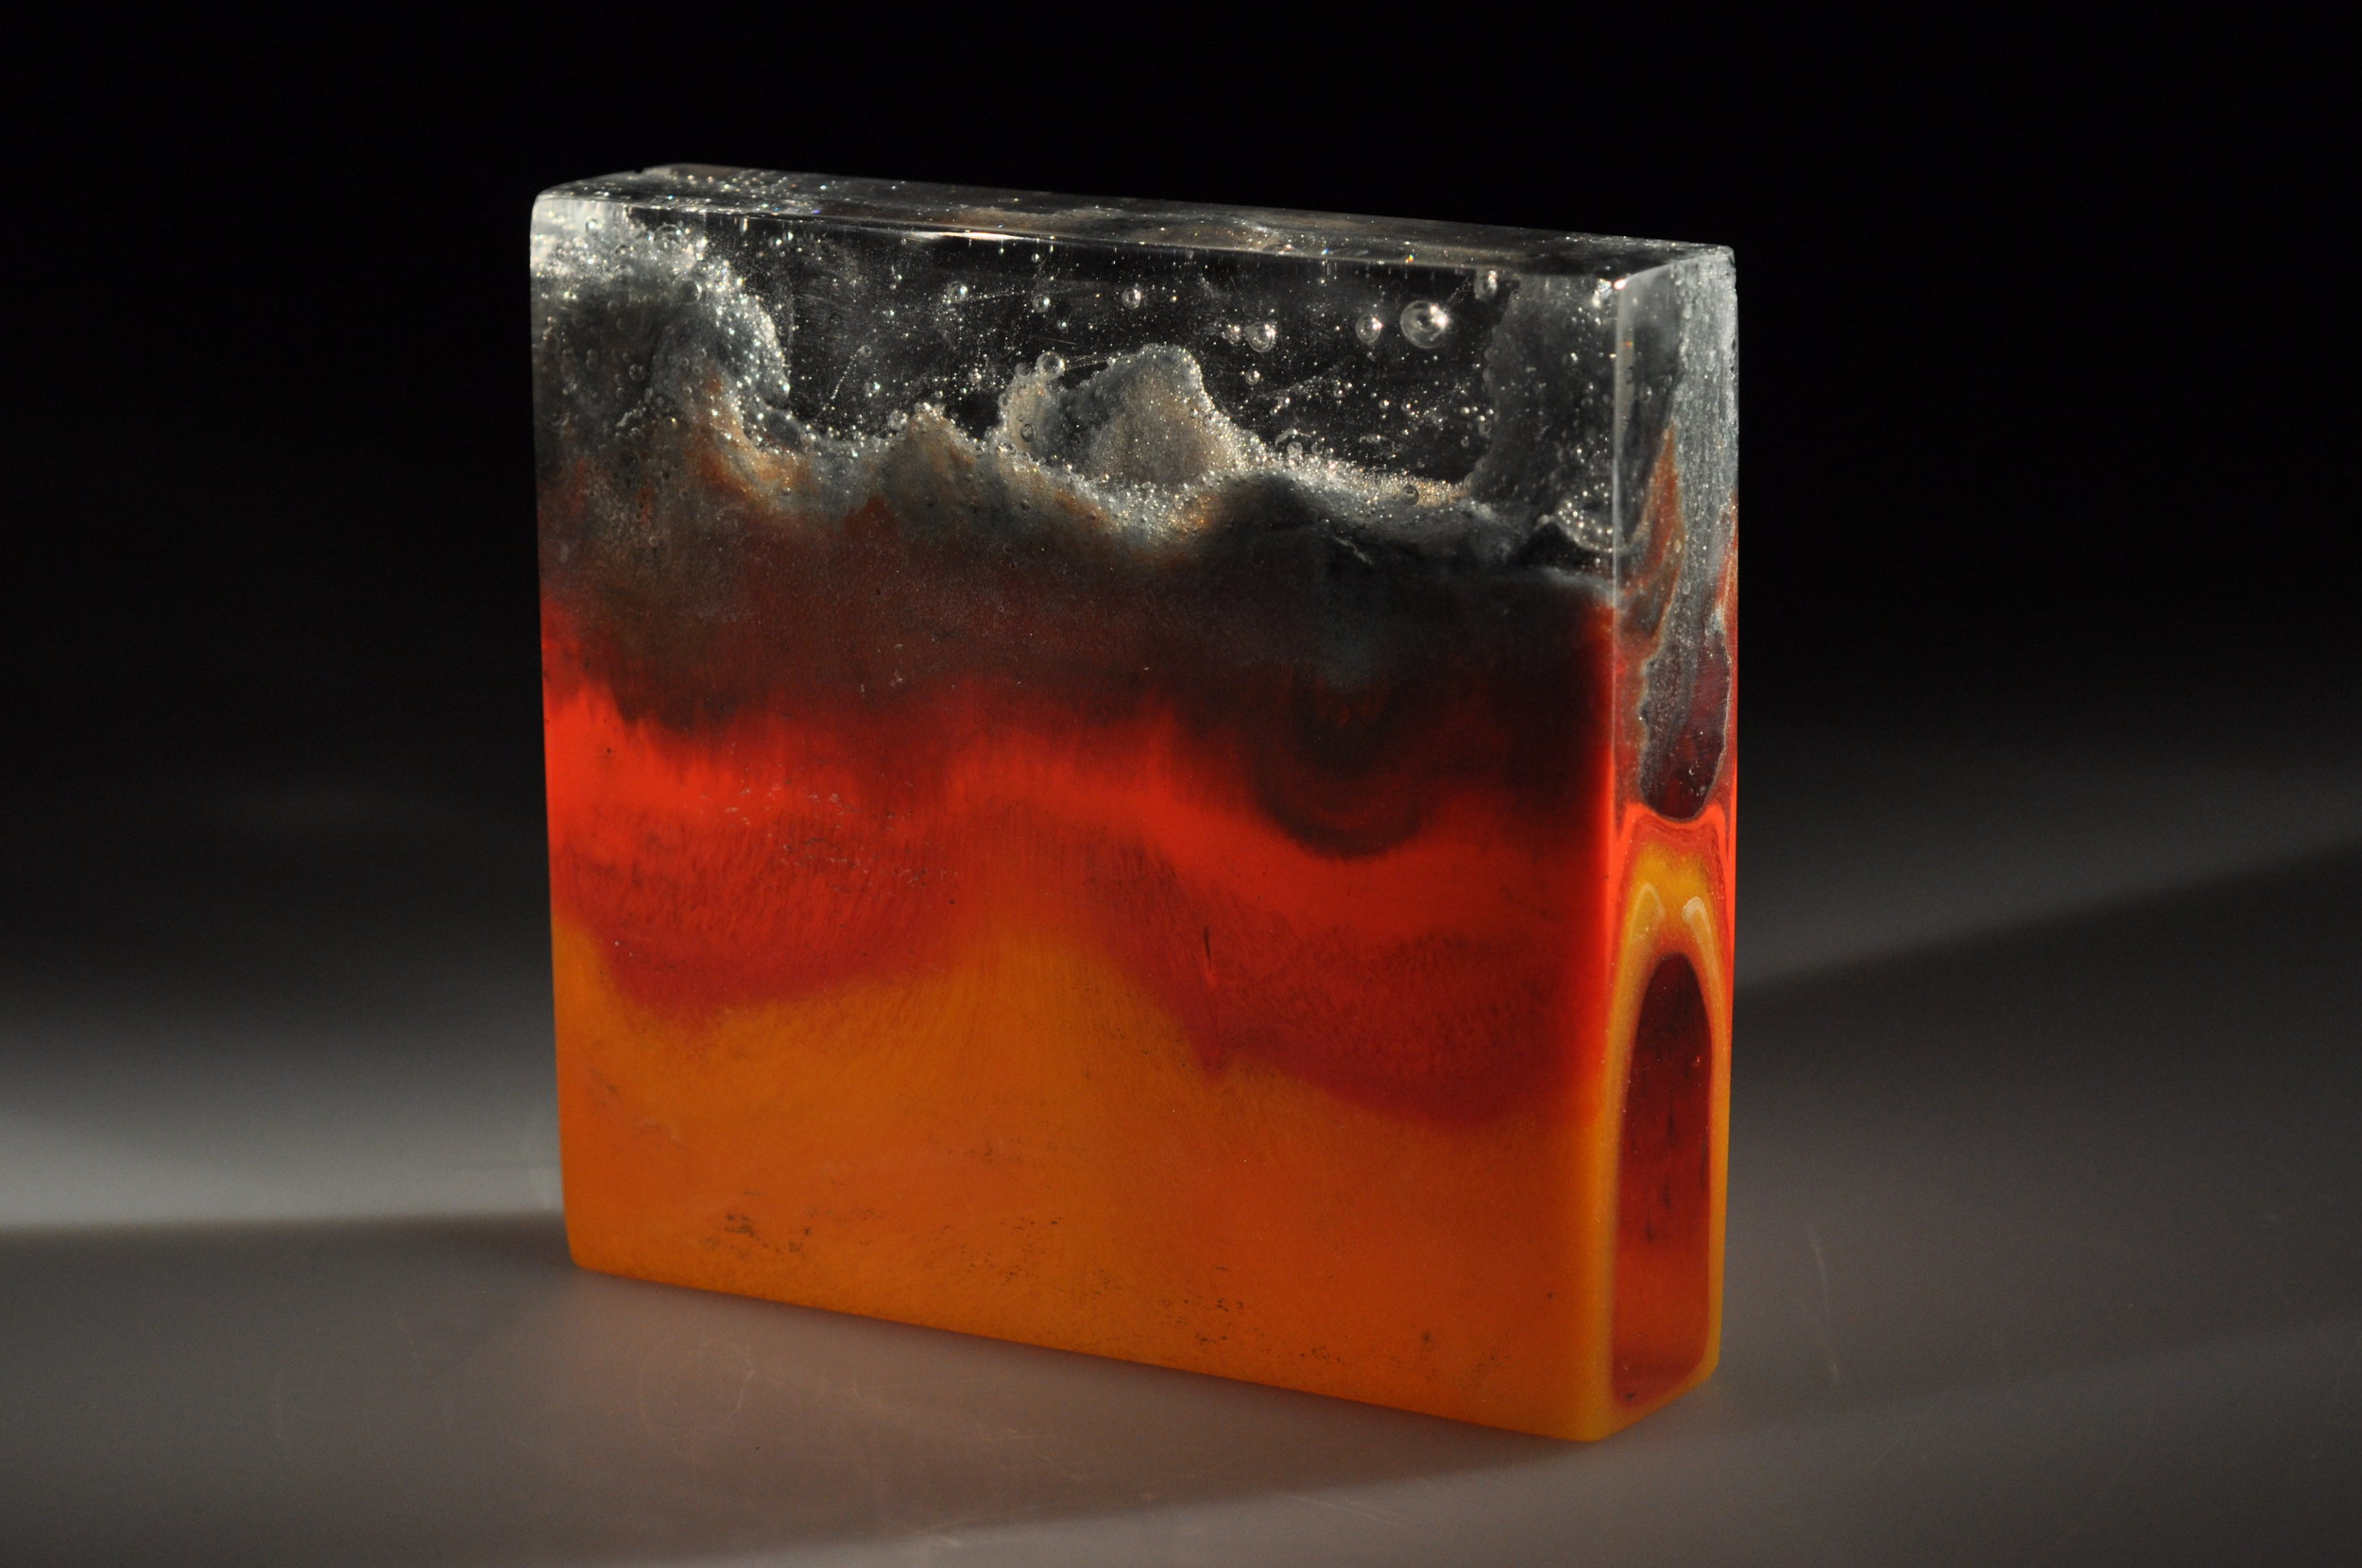 Thermal Convection 2  Kiln cast glass, glass sediment  5 ¼ x 5 ½ x 1 ¼ inches  $800